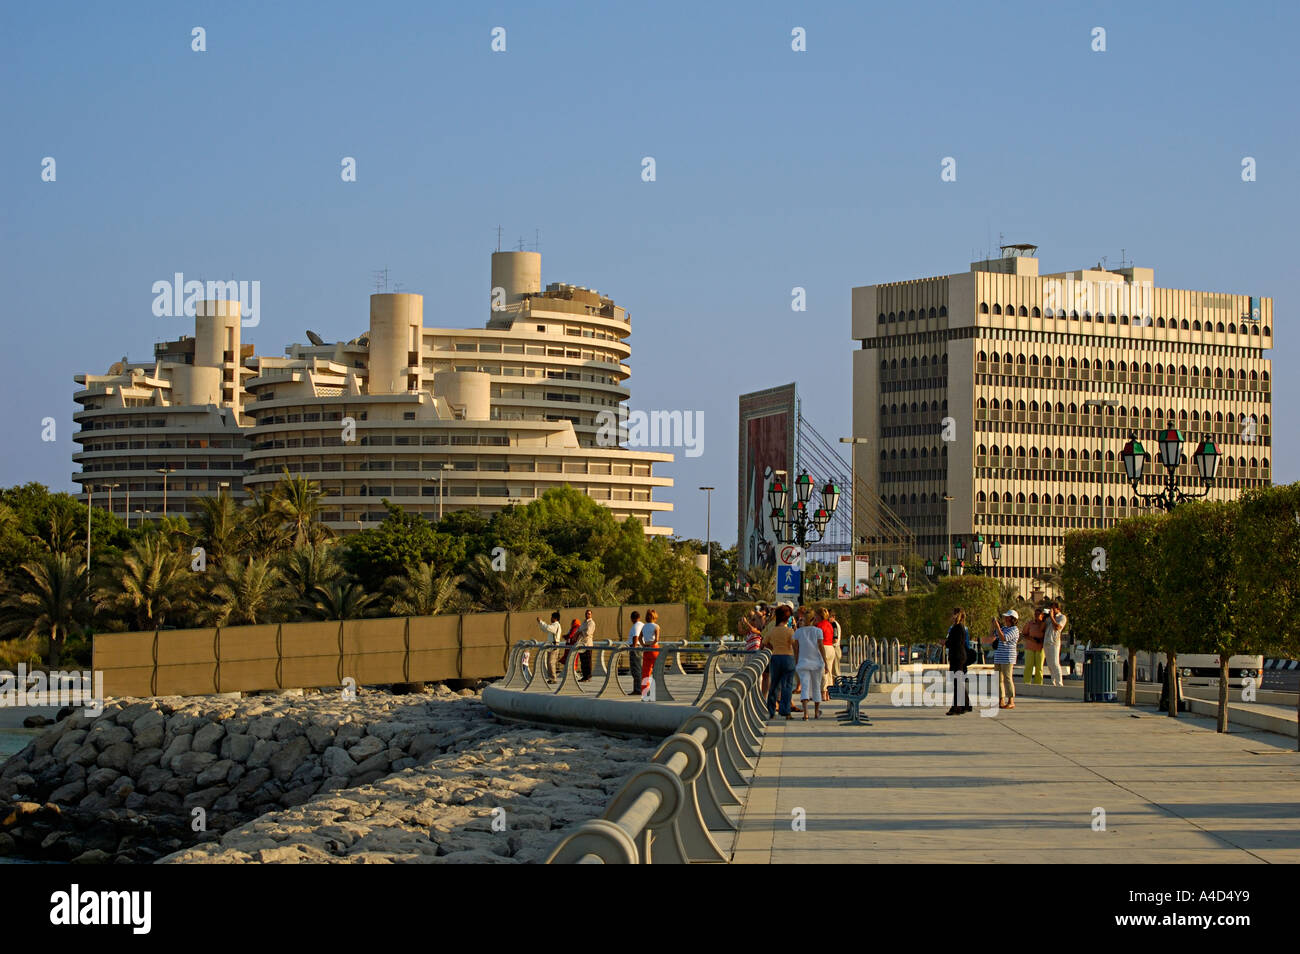 Adnoc Office Stock Photos & Adnoc Office Stock Images - Alamy